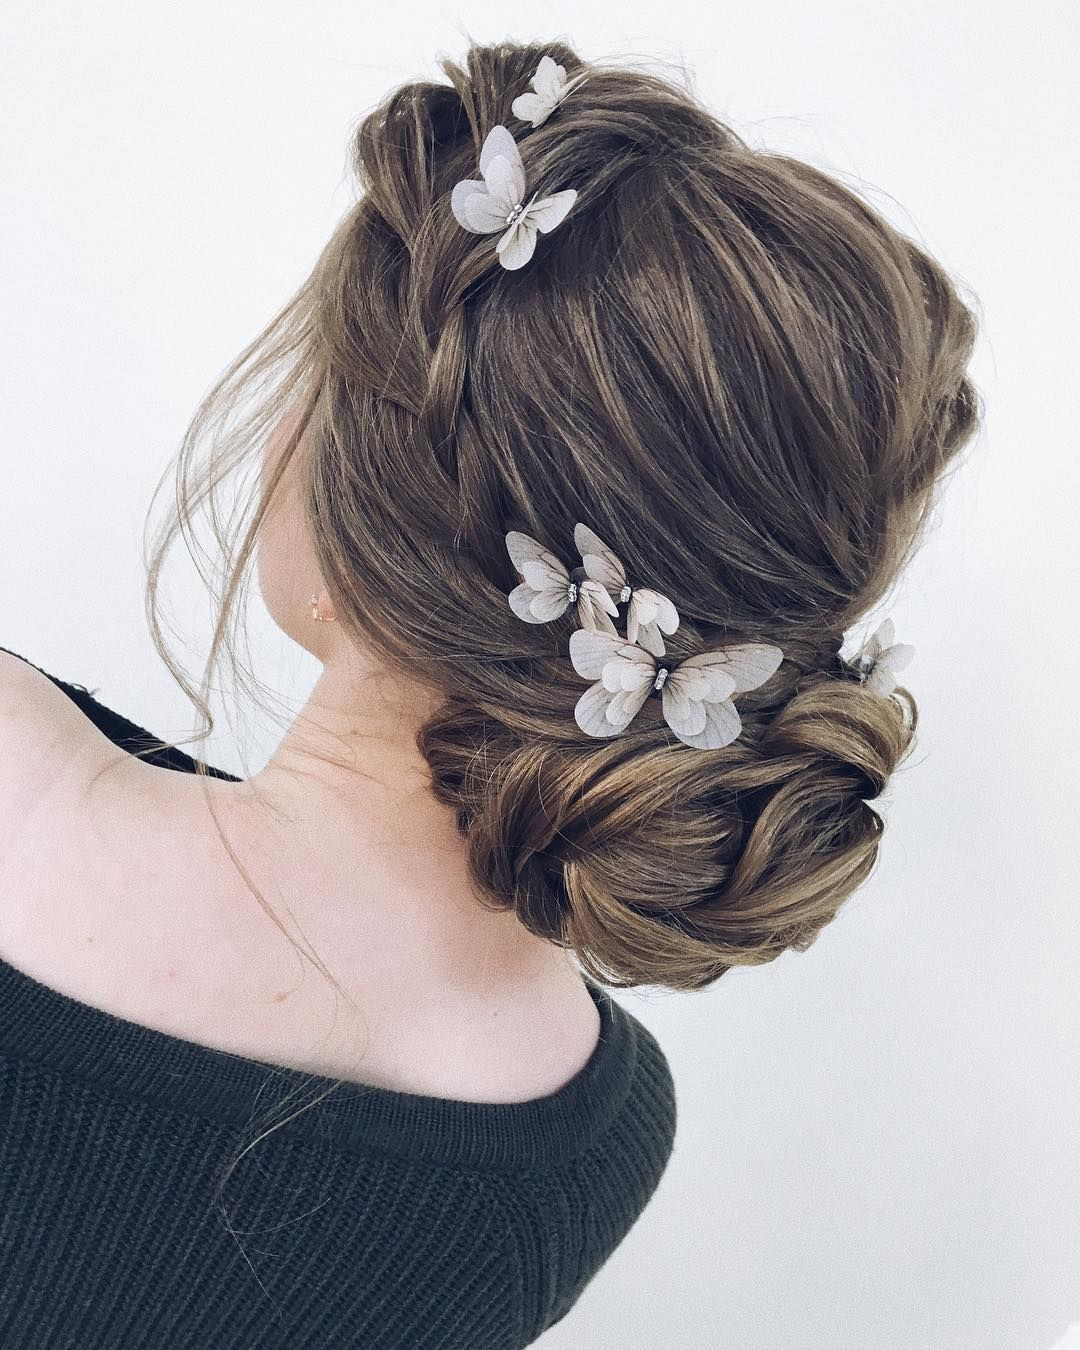 Butterfly hair pin Bride ivory hair pin gold Wedding hair accessories butterfly Silk fairy hair piece jewelry fabric beach hairstyle